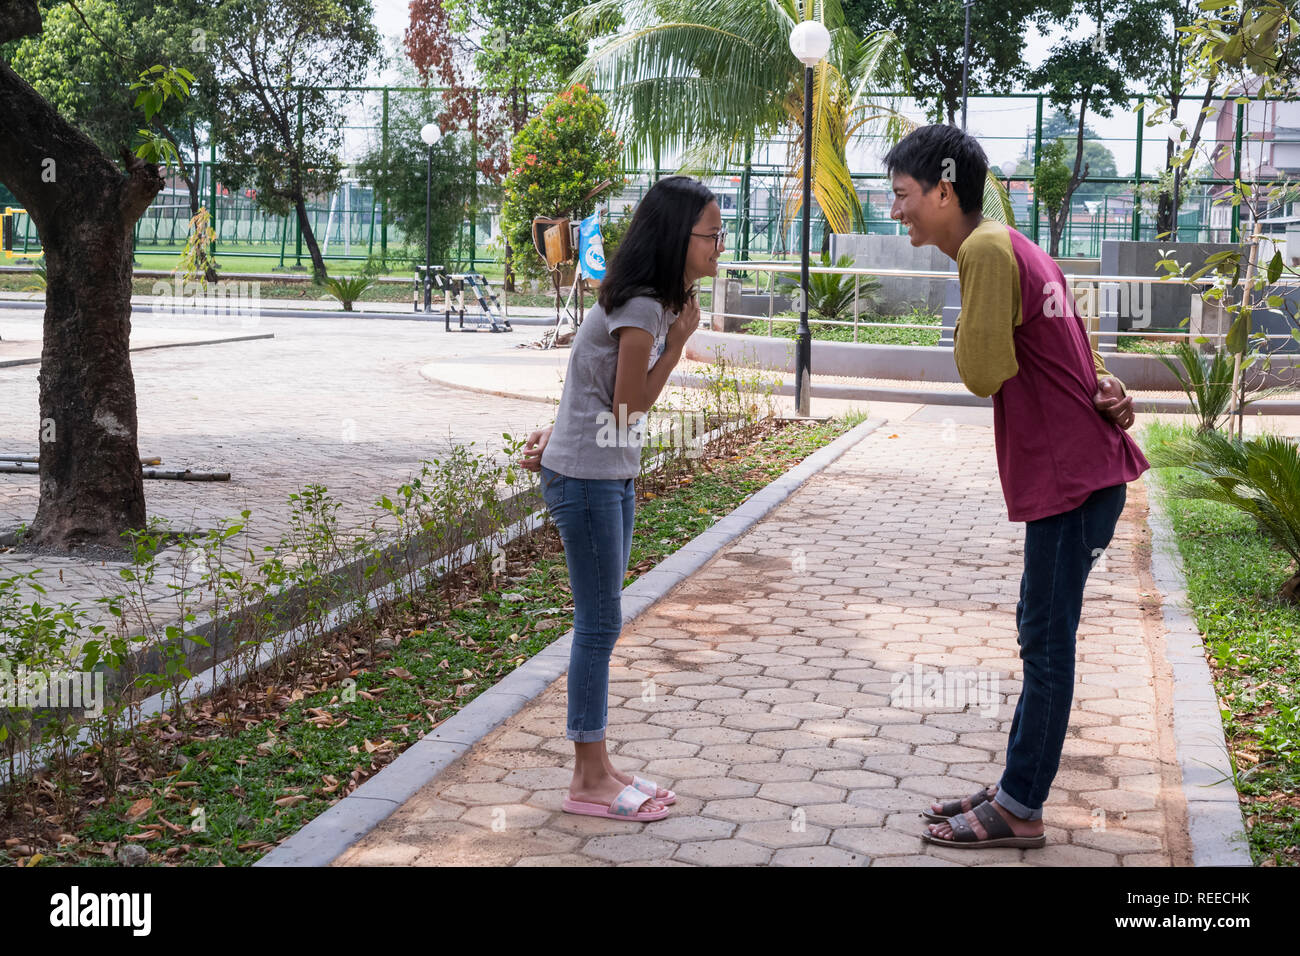 1.18, Facing each other, IndonesianBook Stock Photo